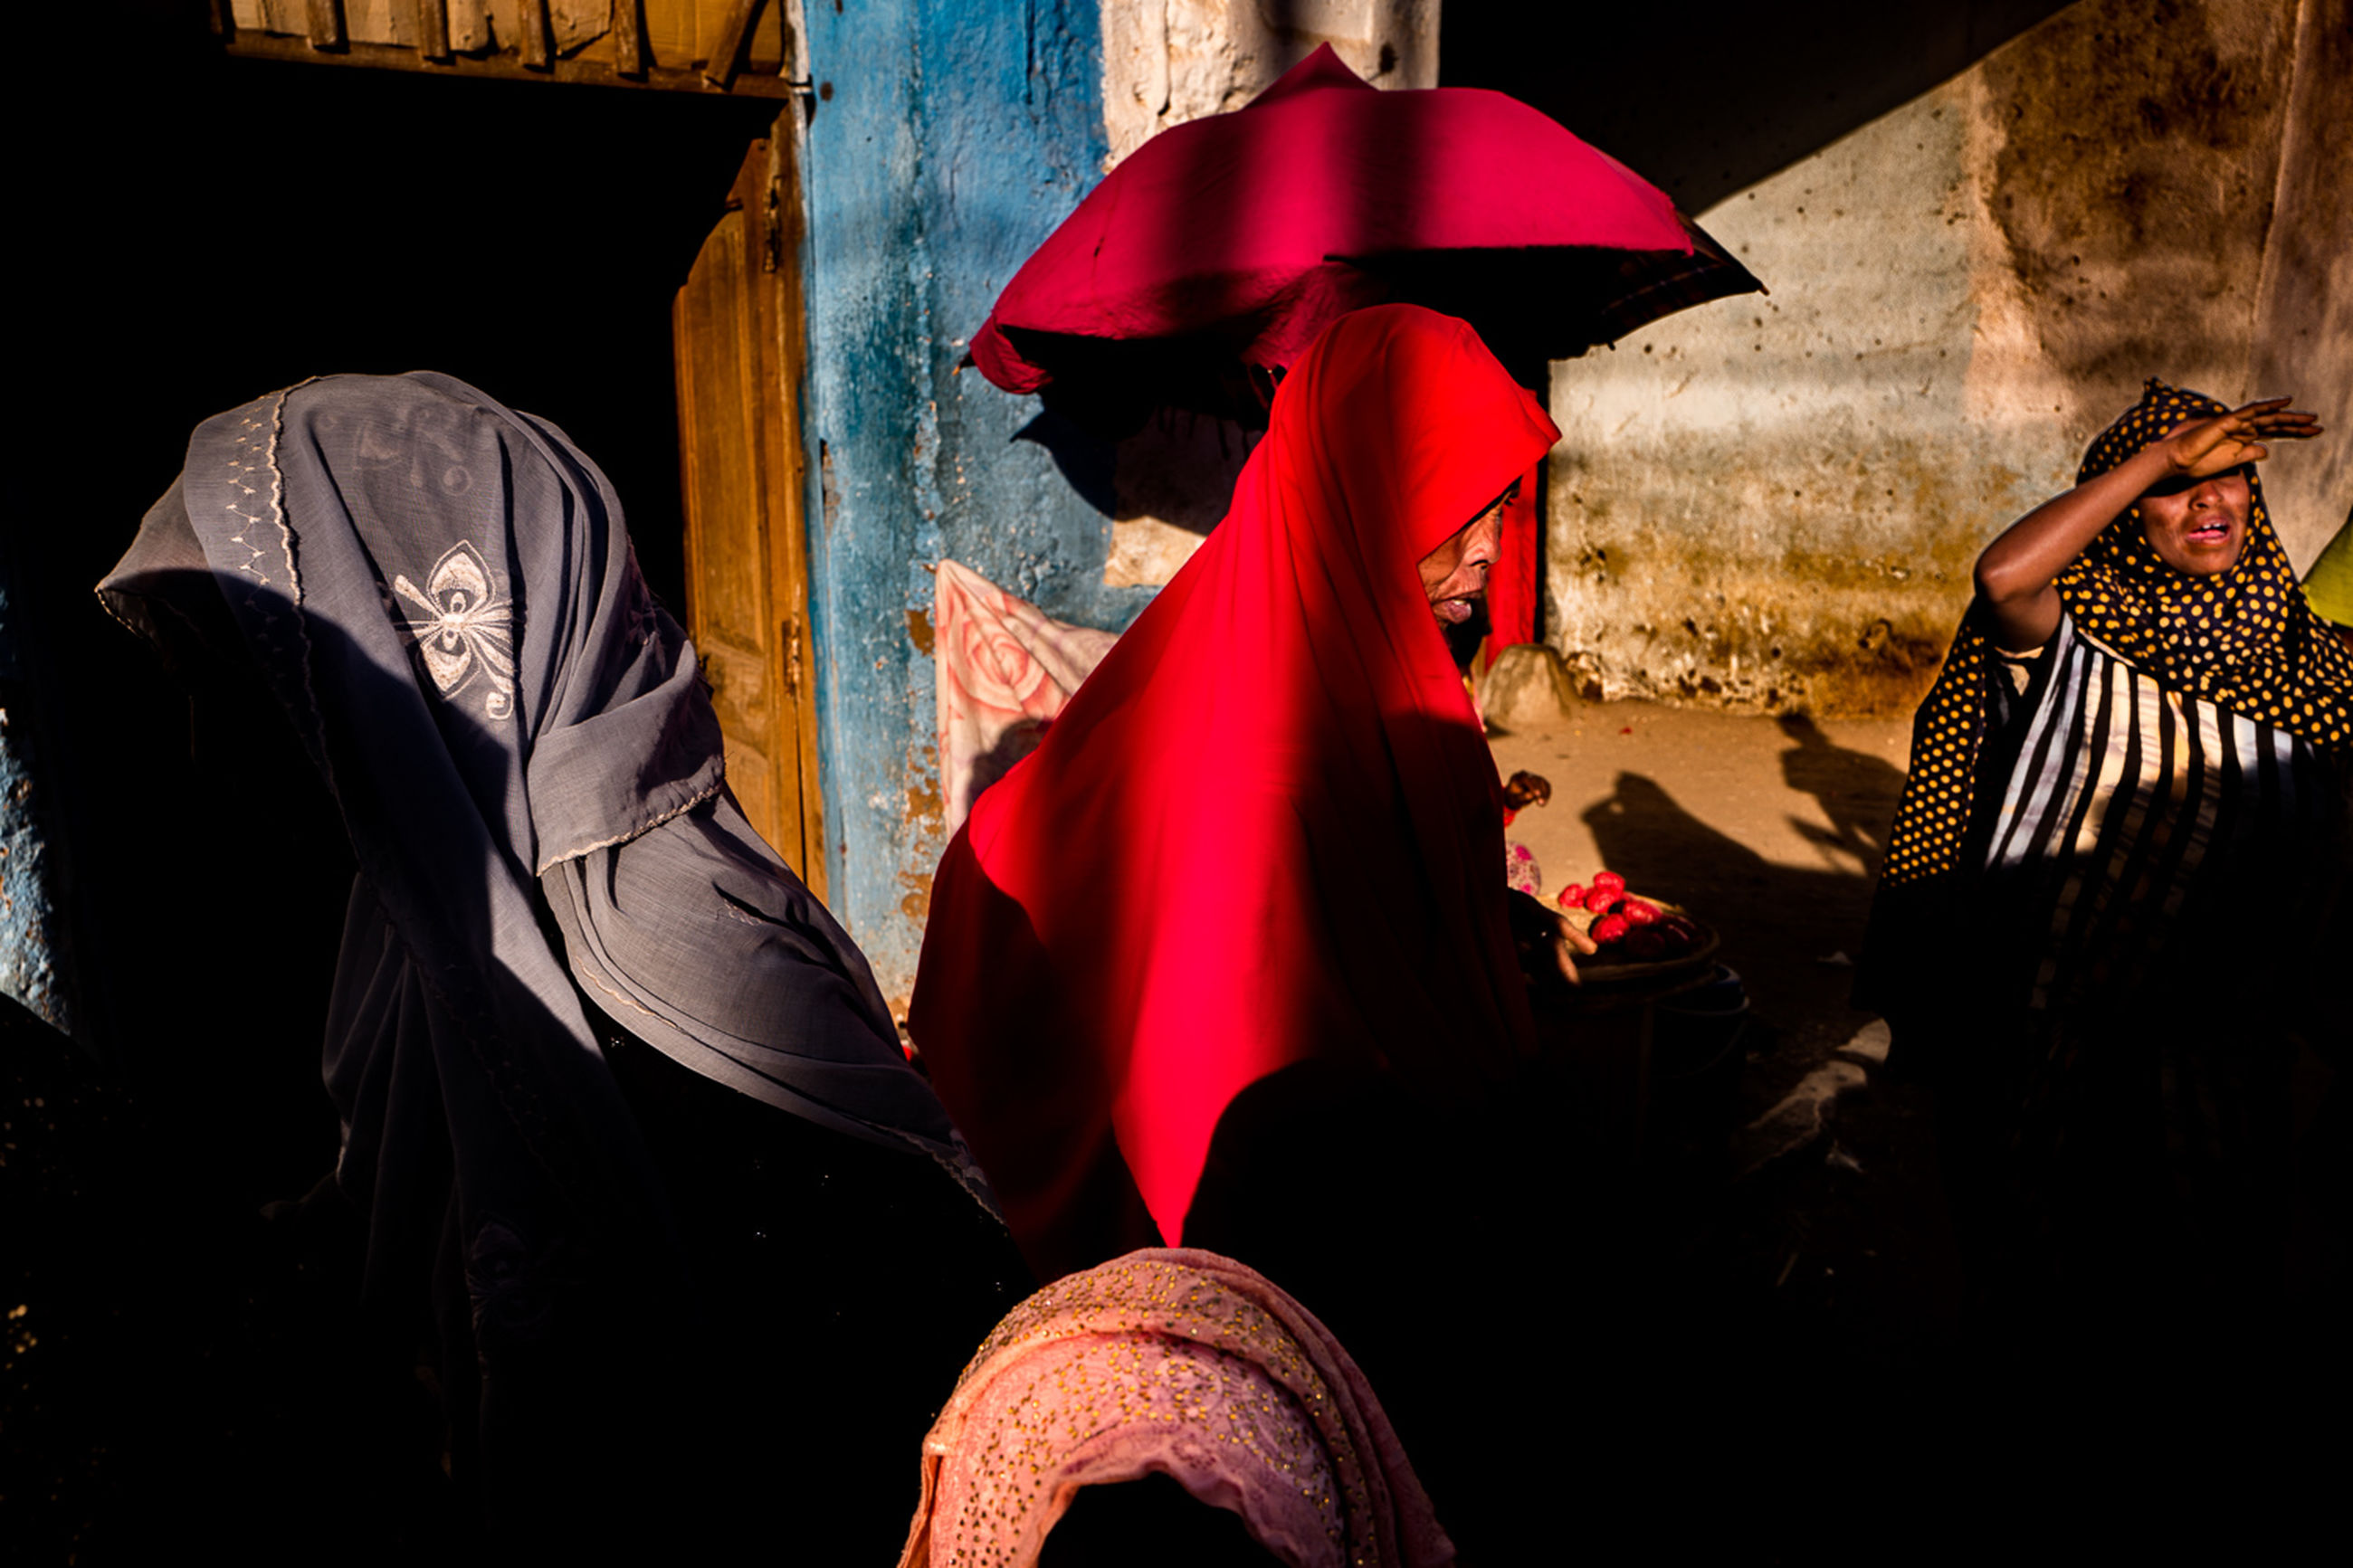 real people, lifestyles, people, umbrella, clothing, leisure activity, men, adult, red, protection, traditional clothing, standing, unrecognizable person, women, day, sunlight, outdoors, obscured face